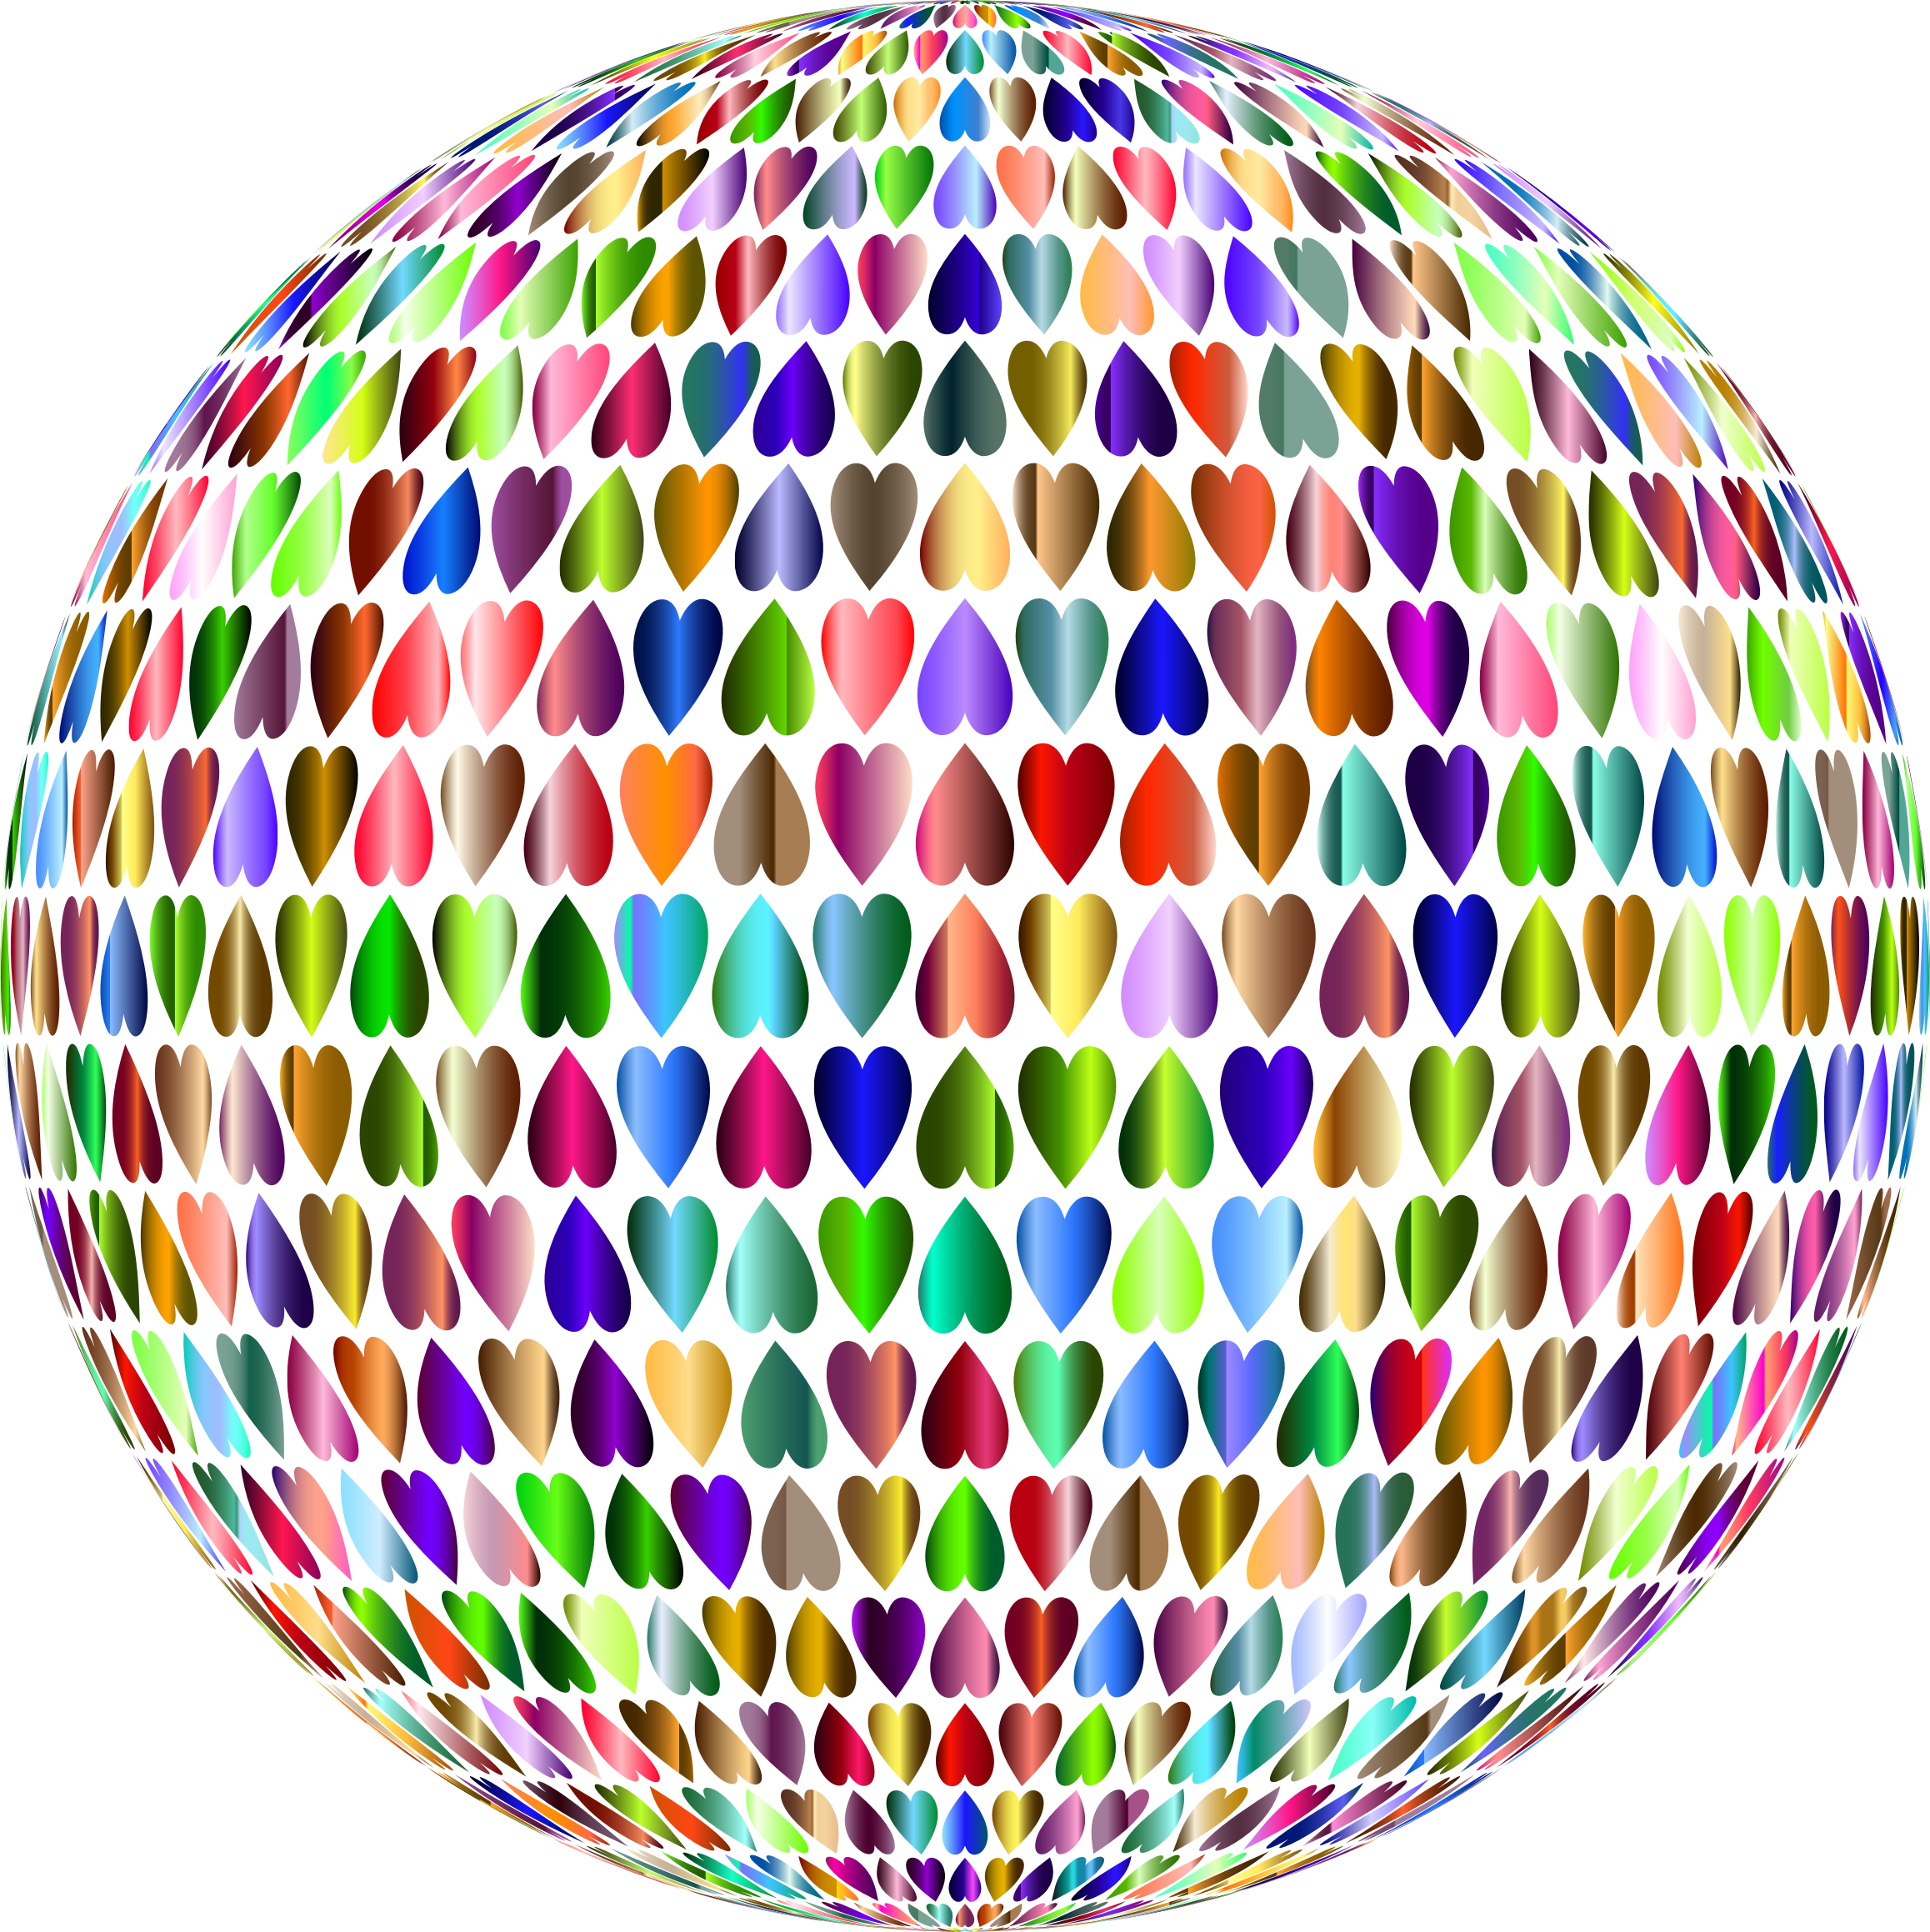 Prismatic Alternating Hearts Sphere 4 No Background by GDJ